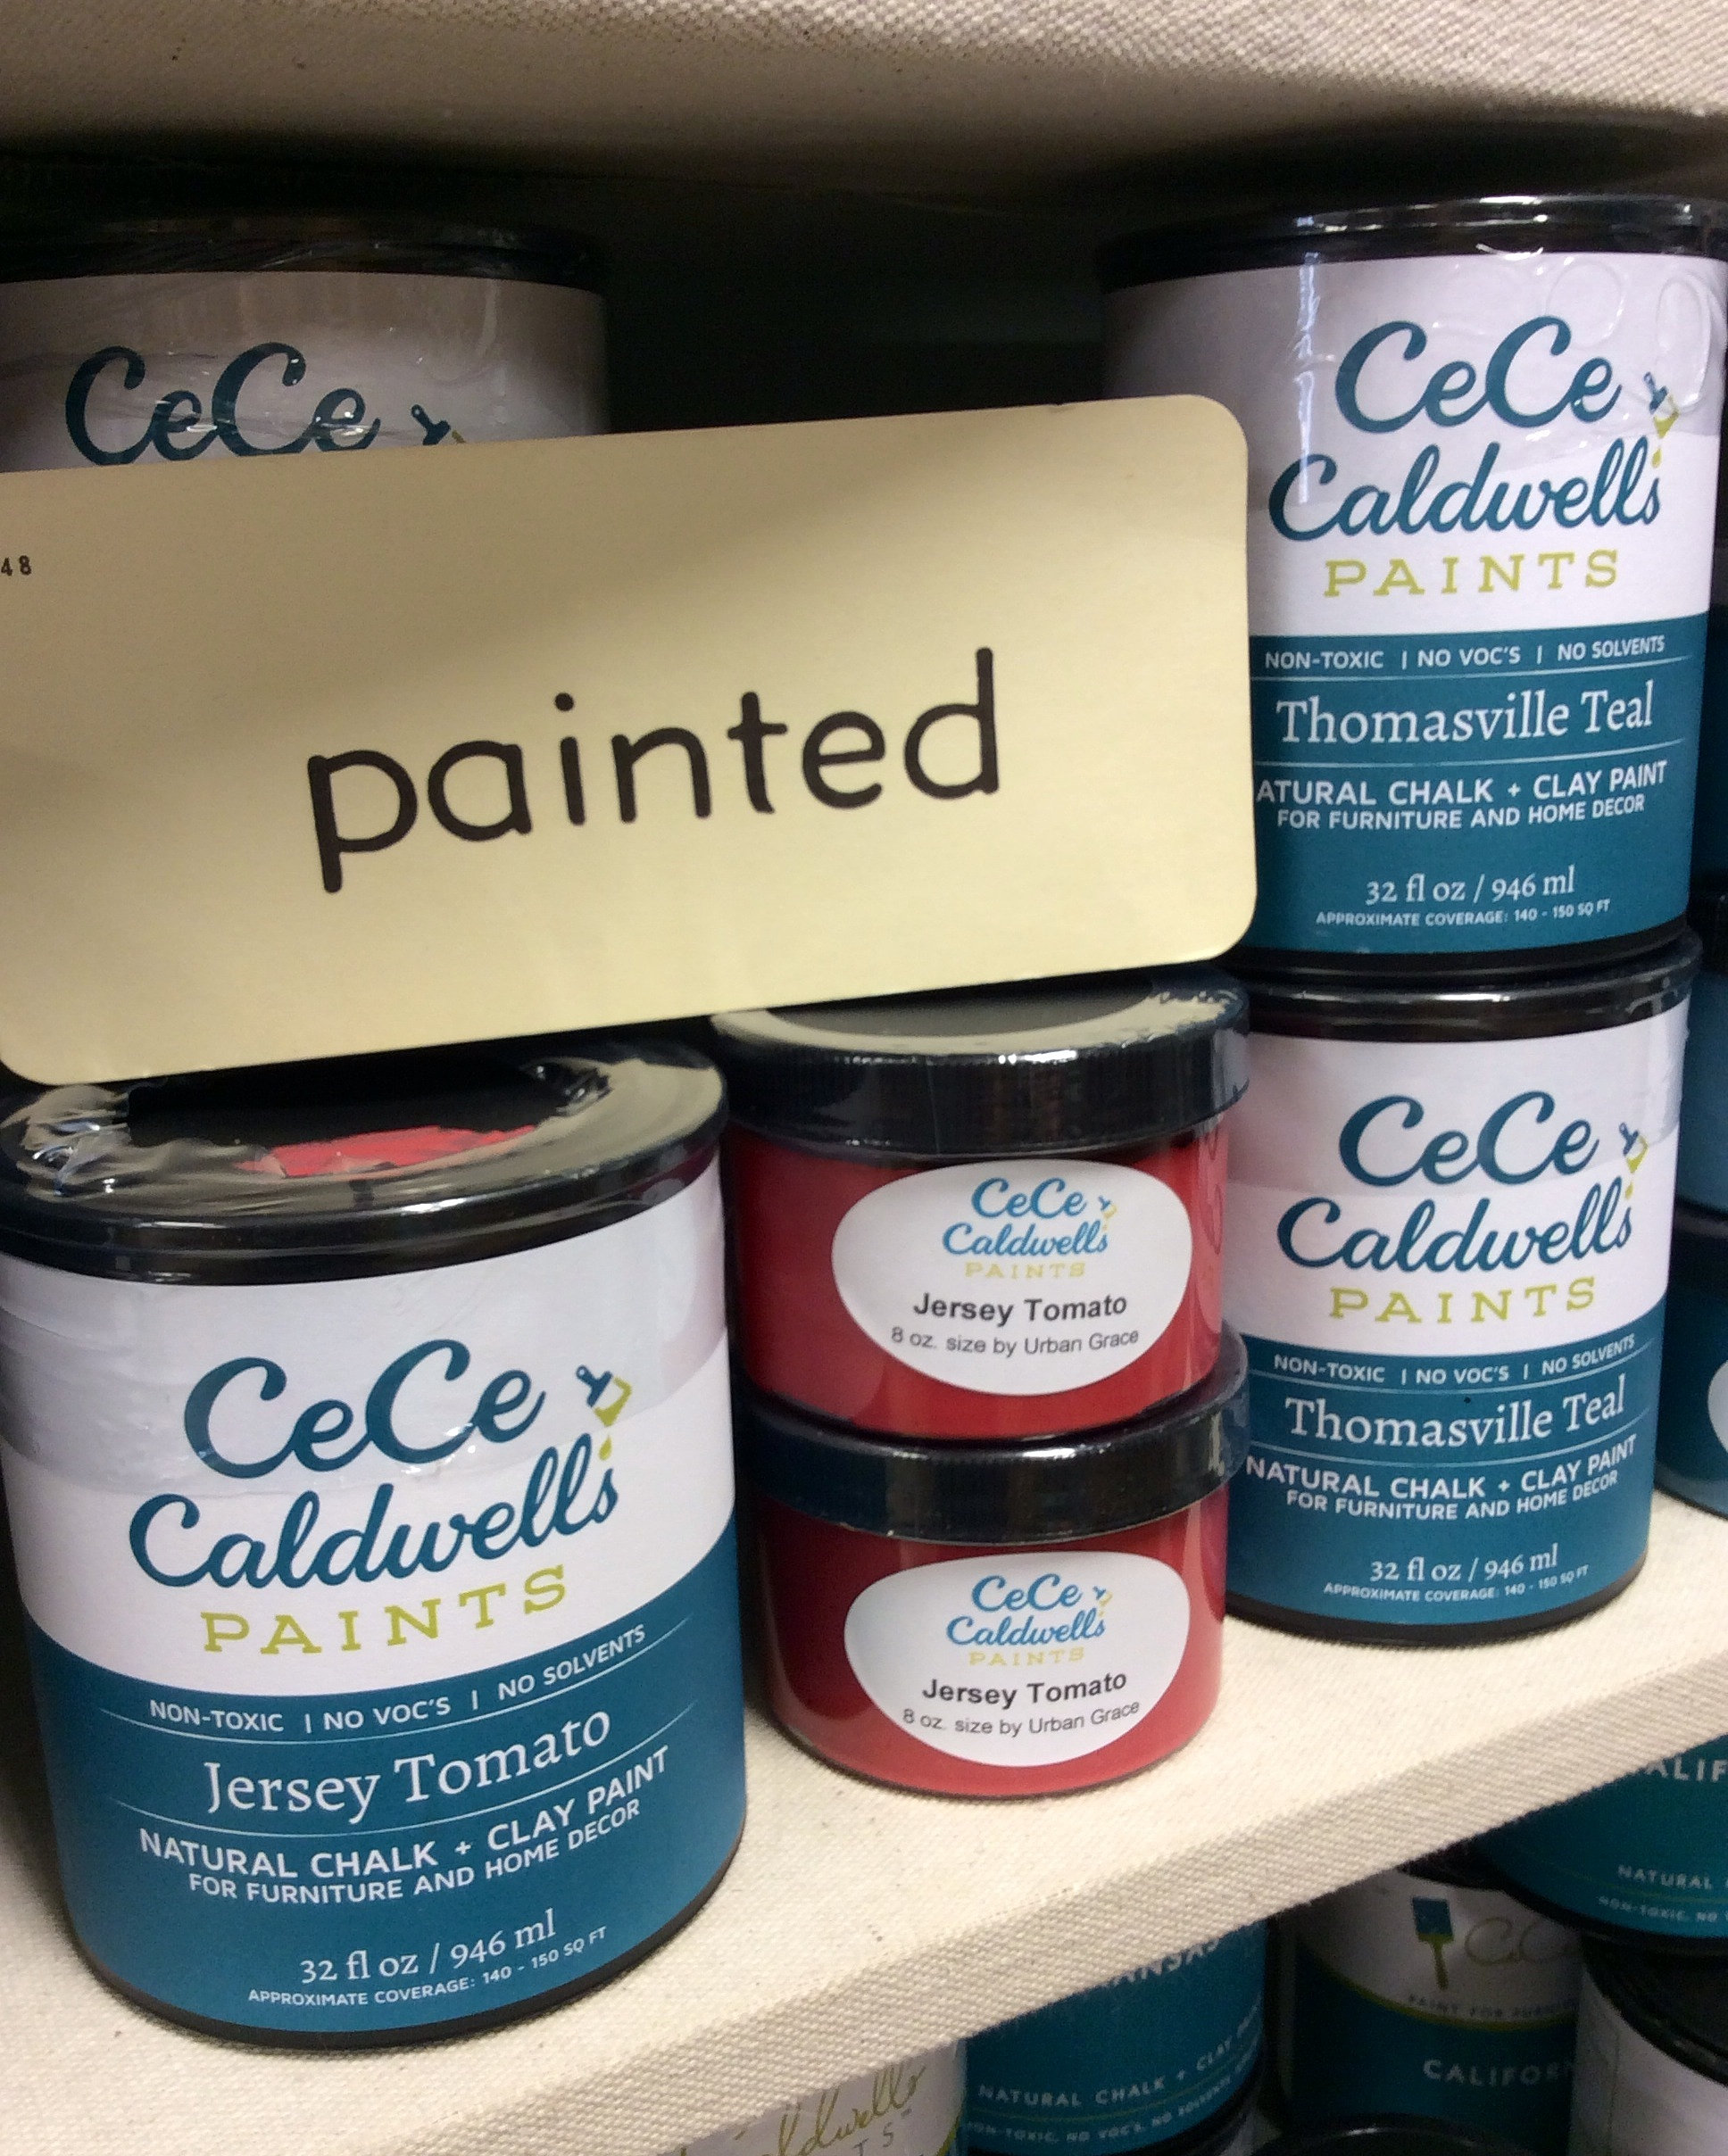 Home Decor and CeCe Caldwell Paints | General Finishes MILK PAINT